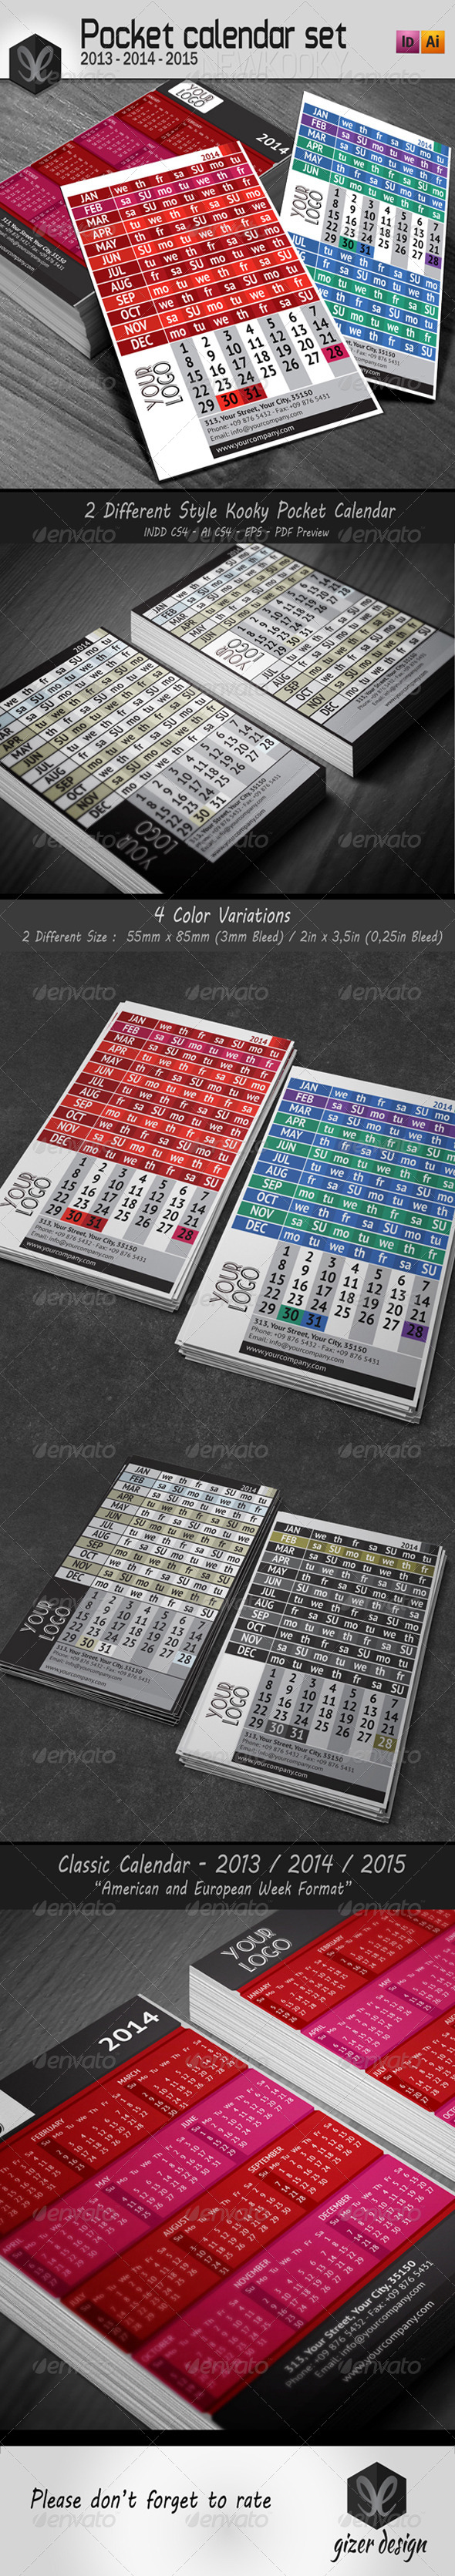 GraphicRiver Pocket Calendar 2014 2013 2015 Set New Kooky 5424890